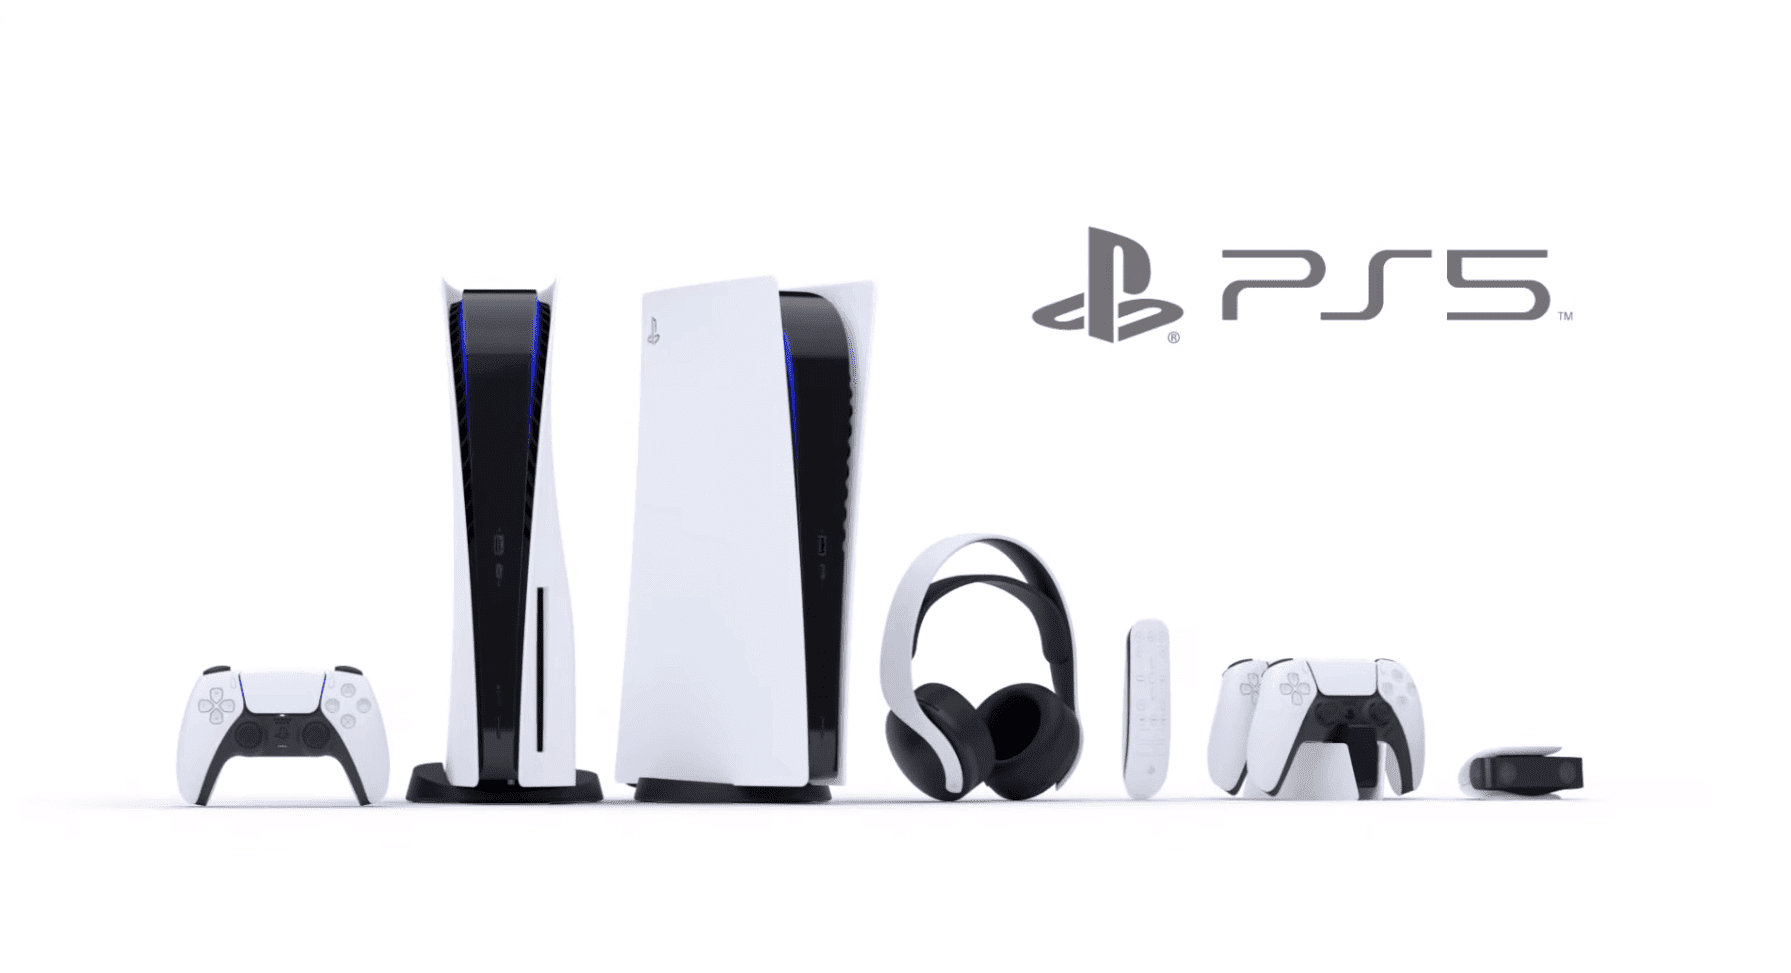 ps5 cost in the USA